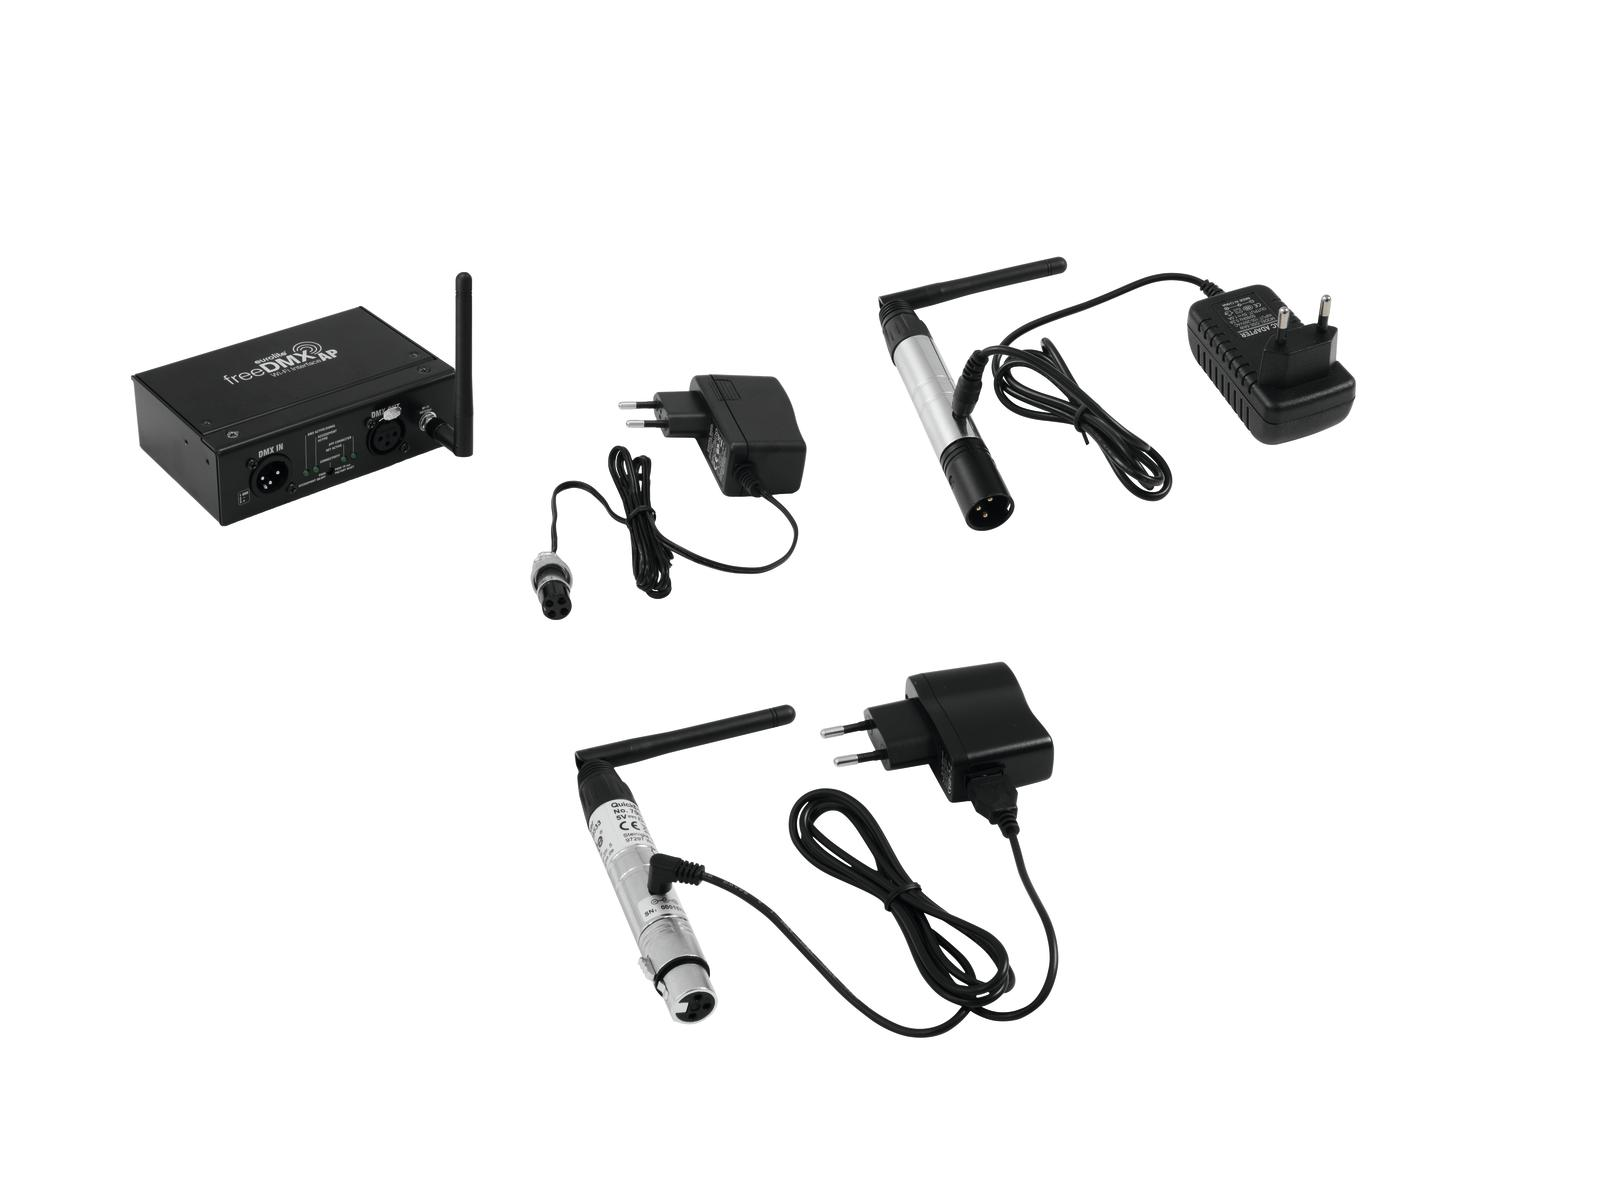 EUROLITE Set freeDMX AP Interfaccia Wi-Fi + QuickDMX Wireless tran